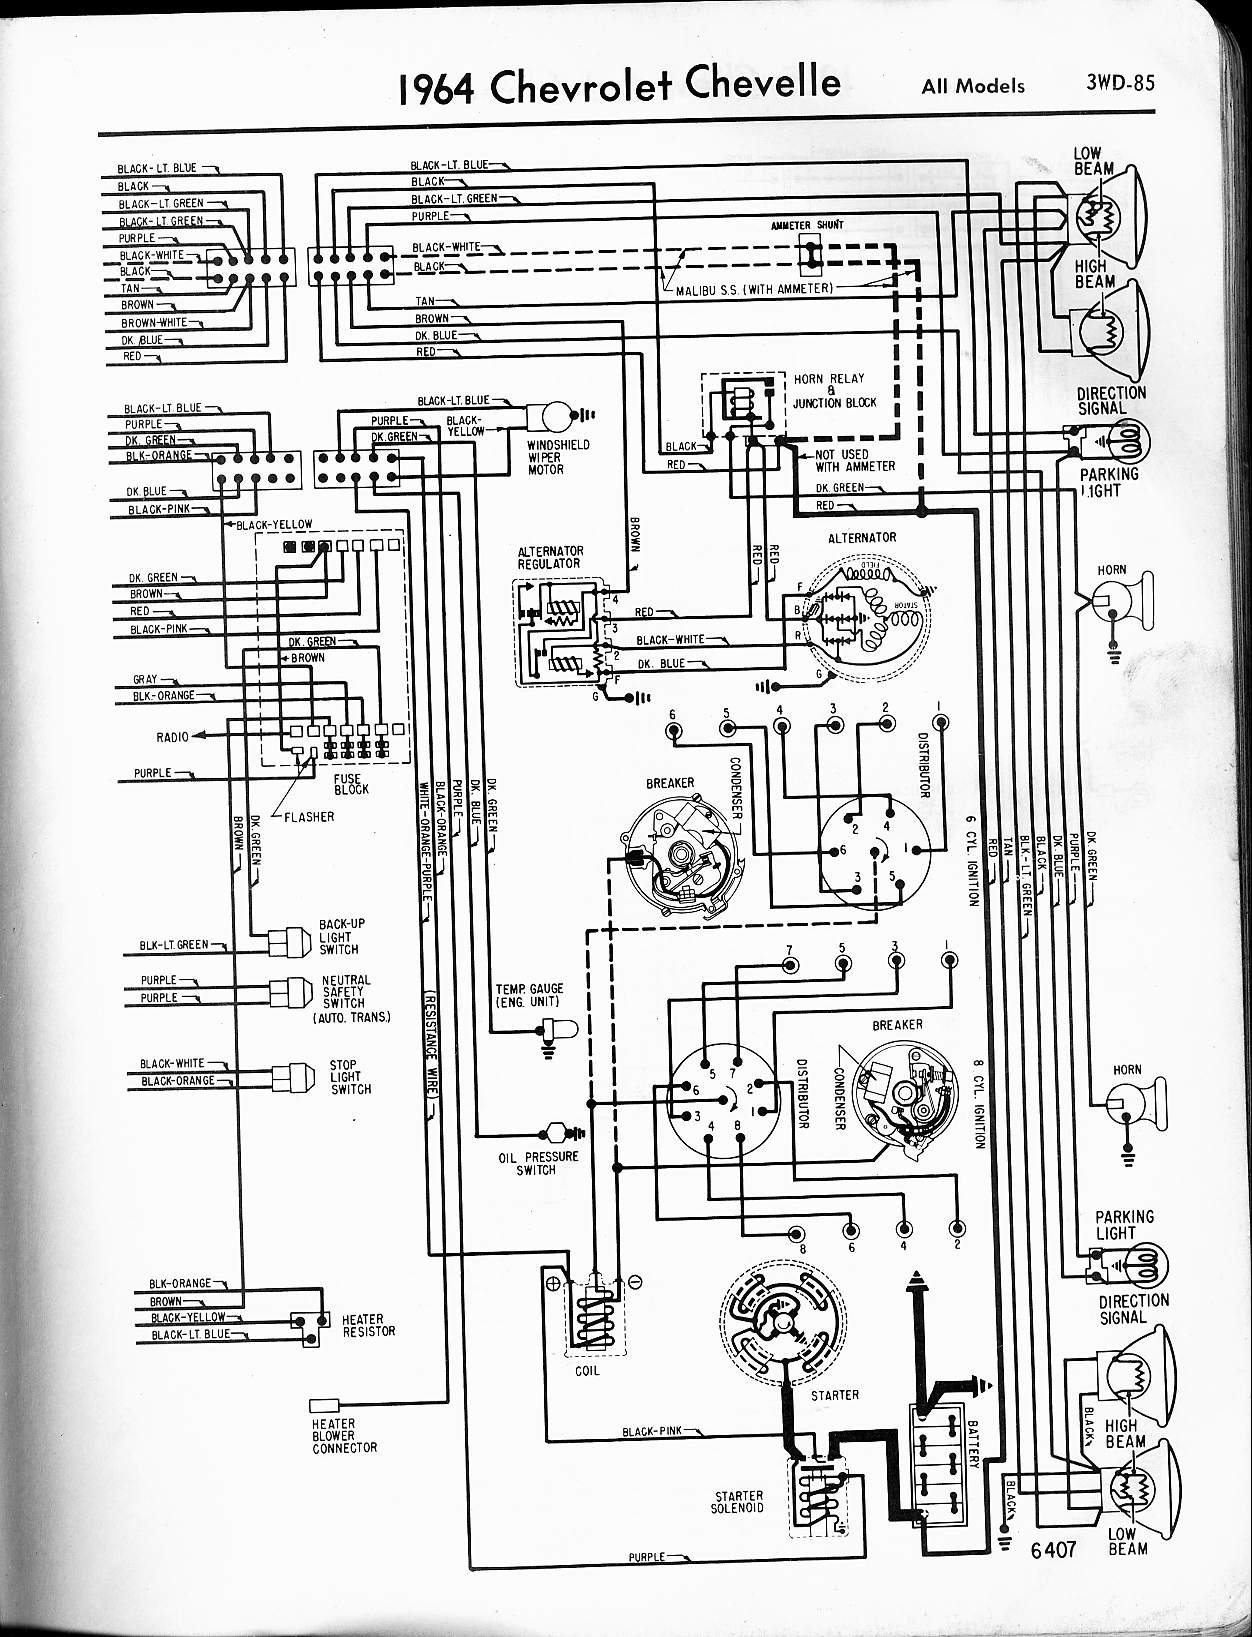 MWireChev64_3WD 085 chevy diagrams pontiac hood tach wiring diagram at edmiracle.co